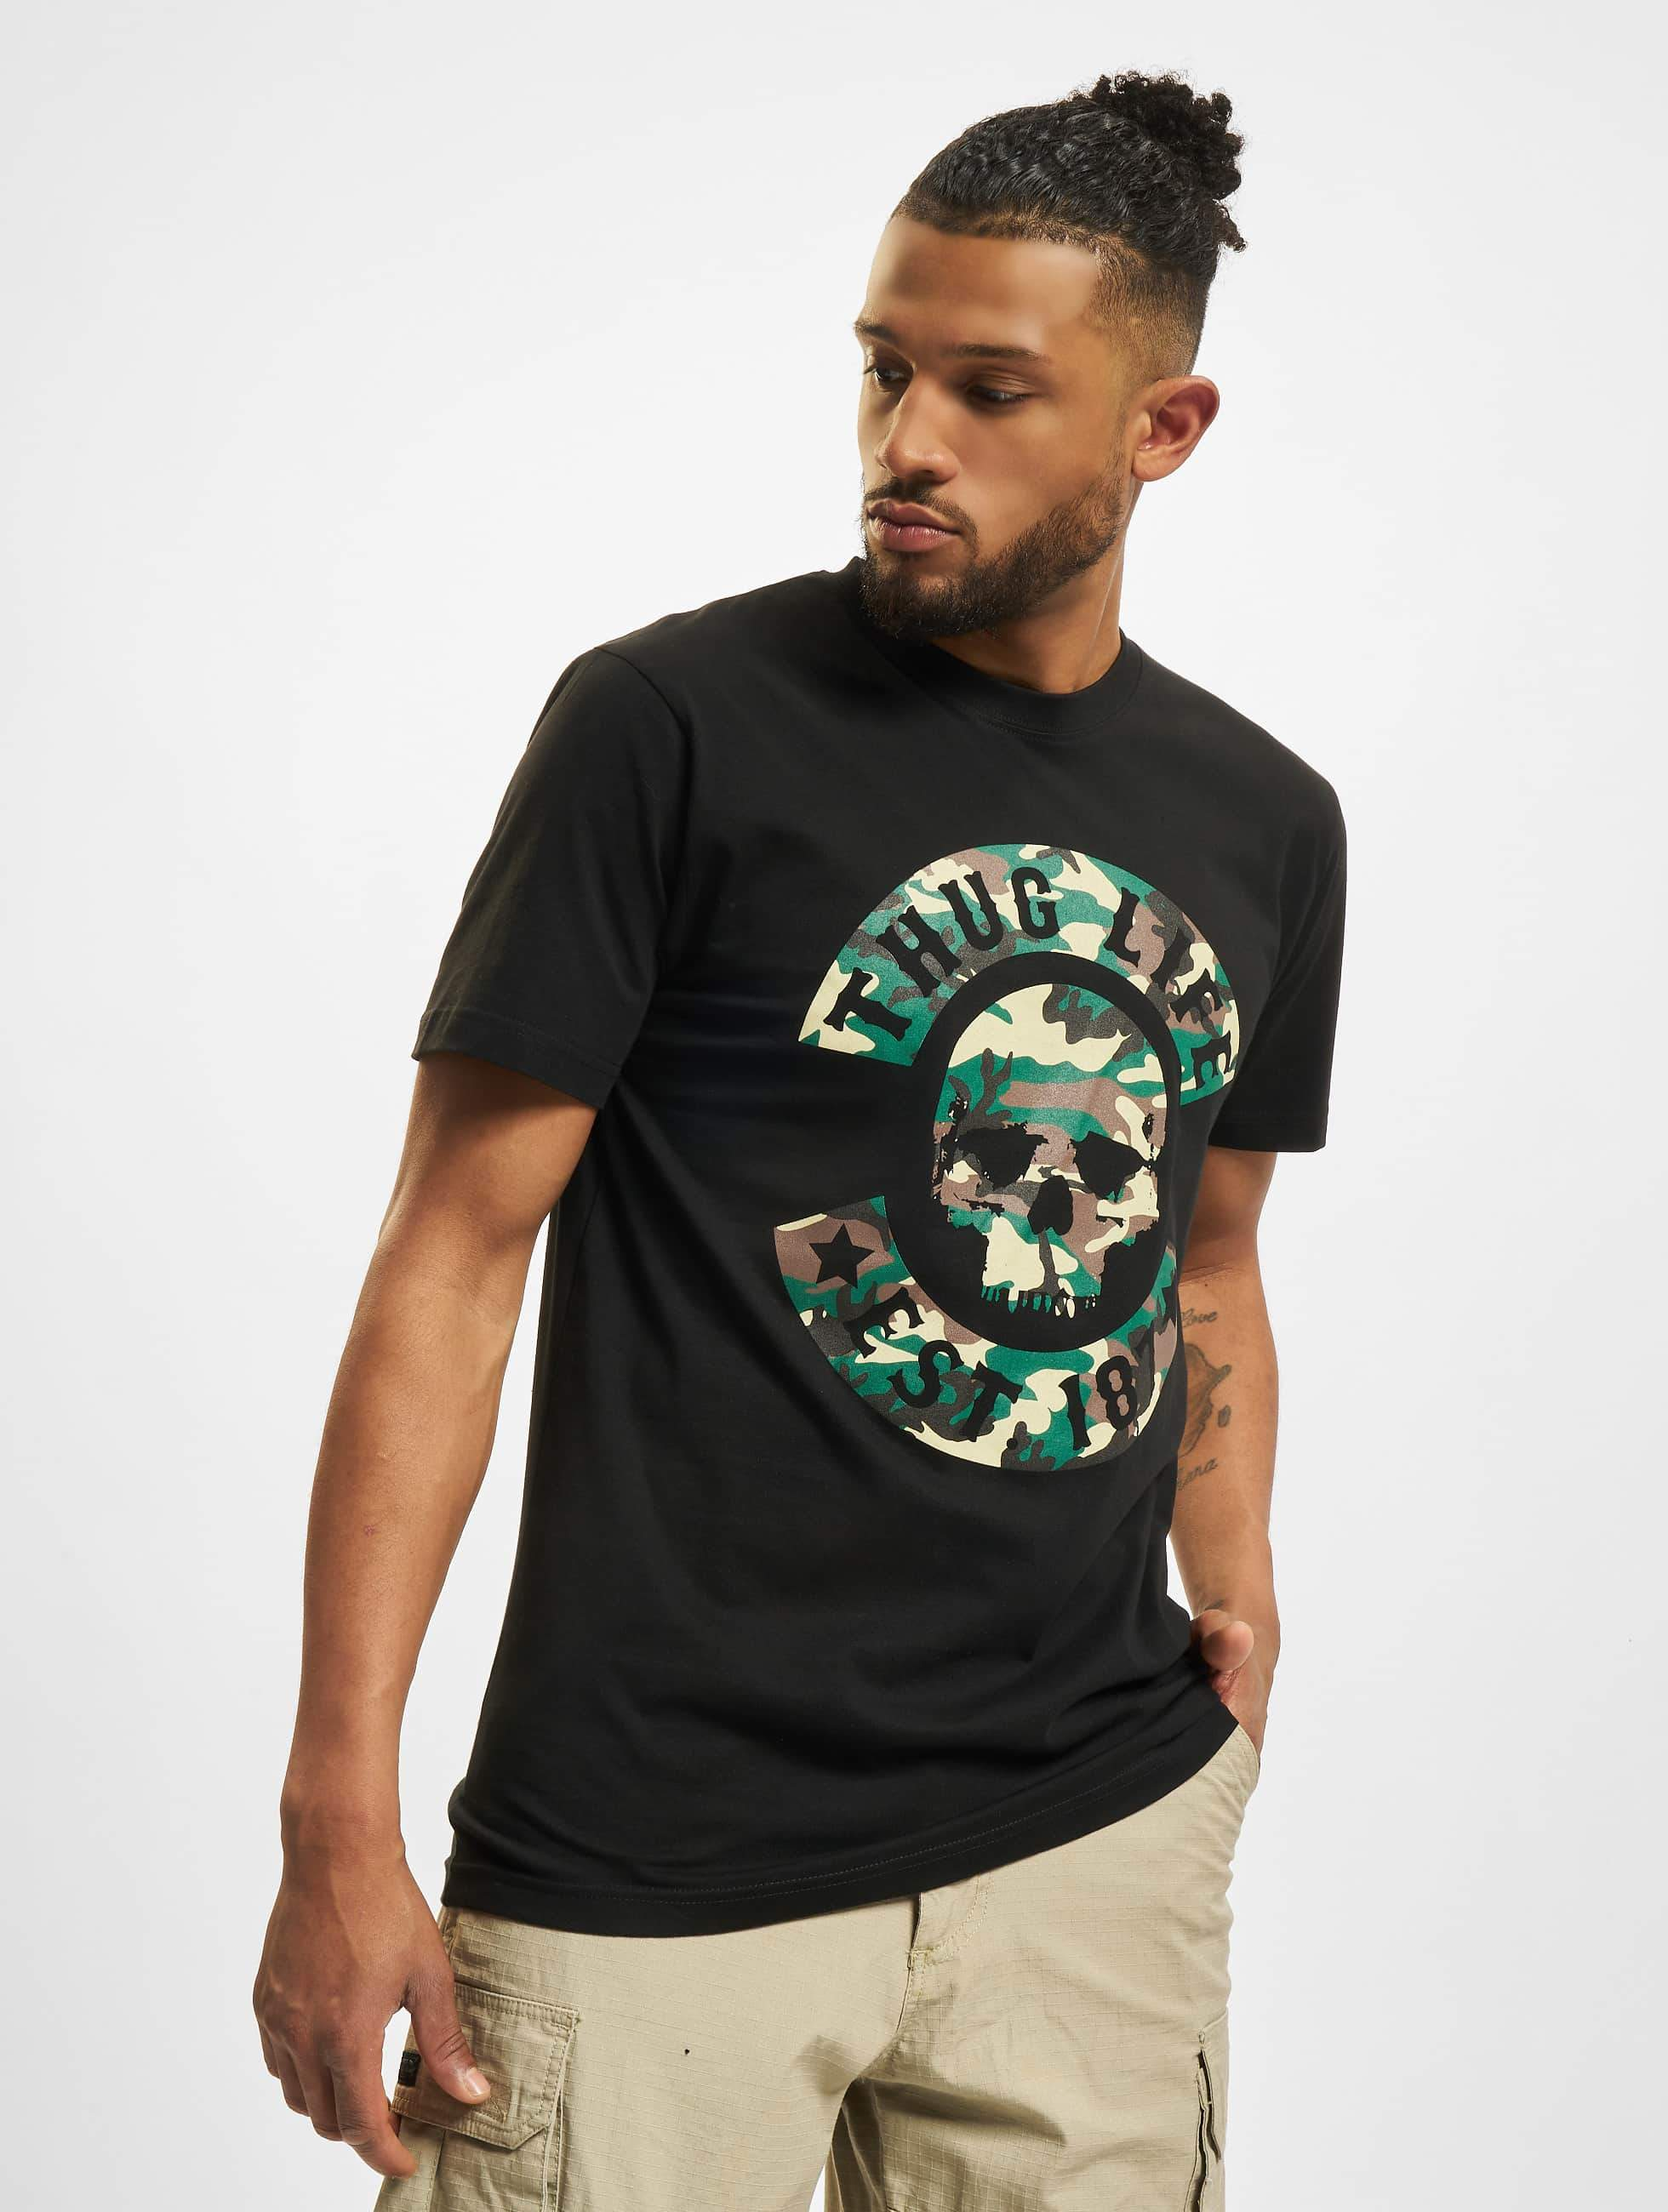 Thug Life / T-Shirt B. Camo in black XL